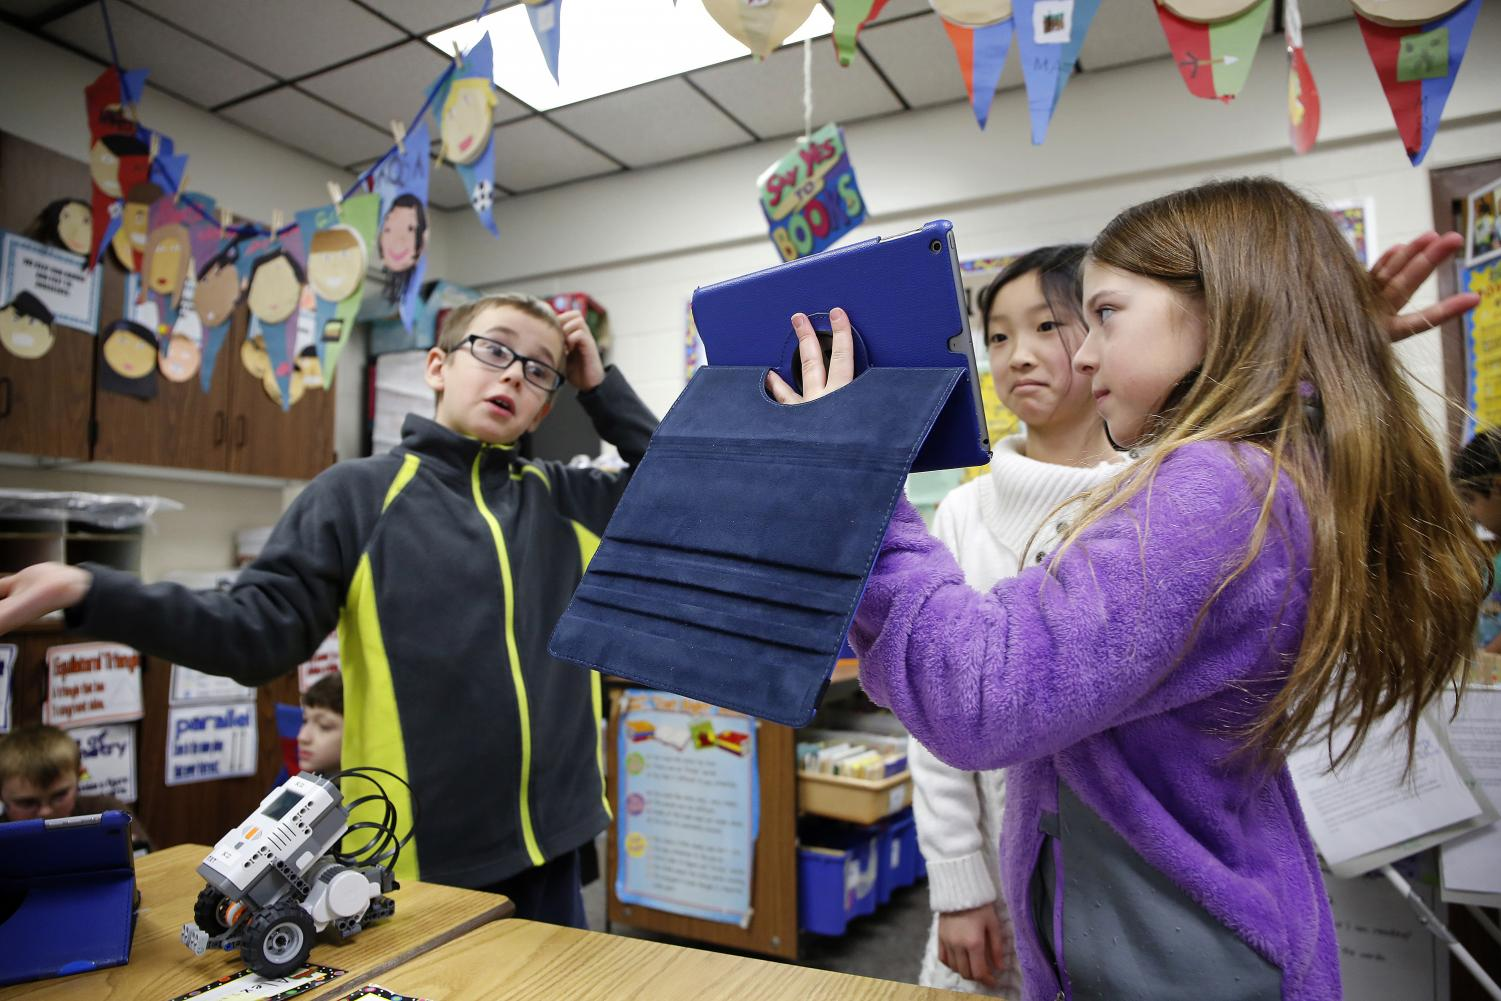 In education alone, K-12 spending on edtech devices and programs has grown from $7.2 billion in 1998 to a projected $21 billion in 2015, according to the U.S. Department of Education. (Chuck Berman/Chicago Tribune/TNS)